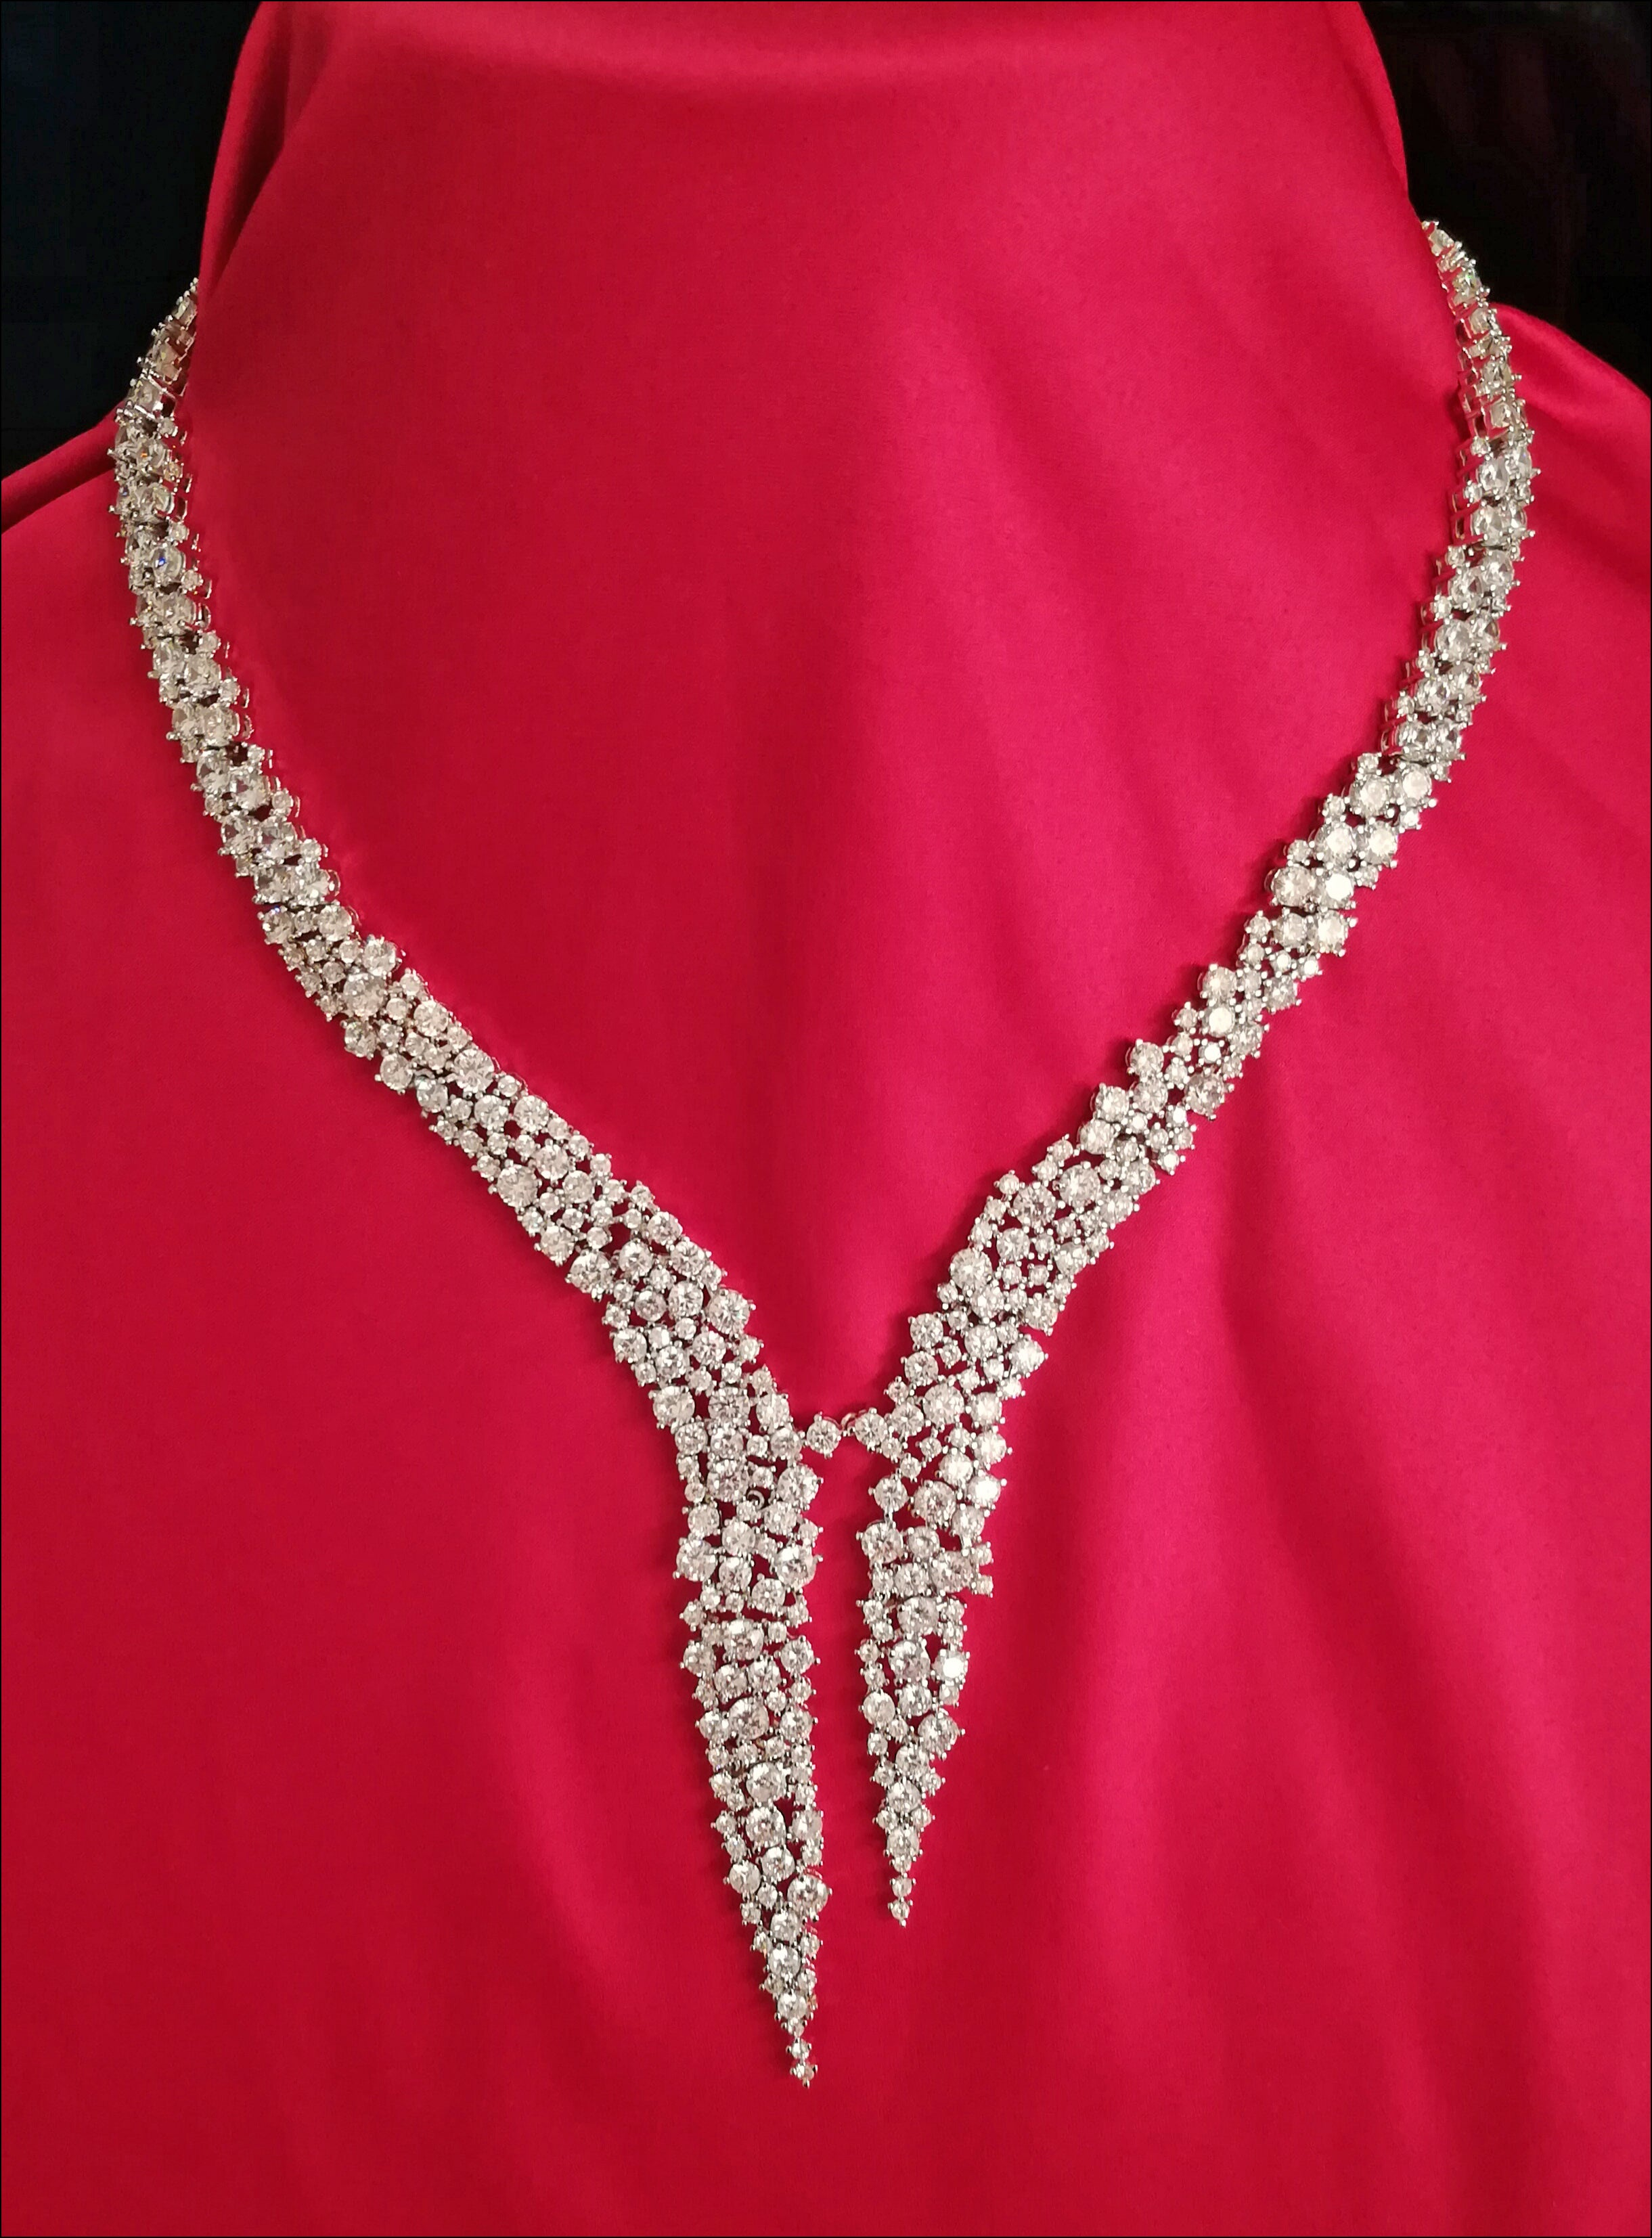 Angelina Hart Monaco Diamond Necklace